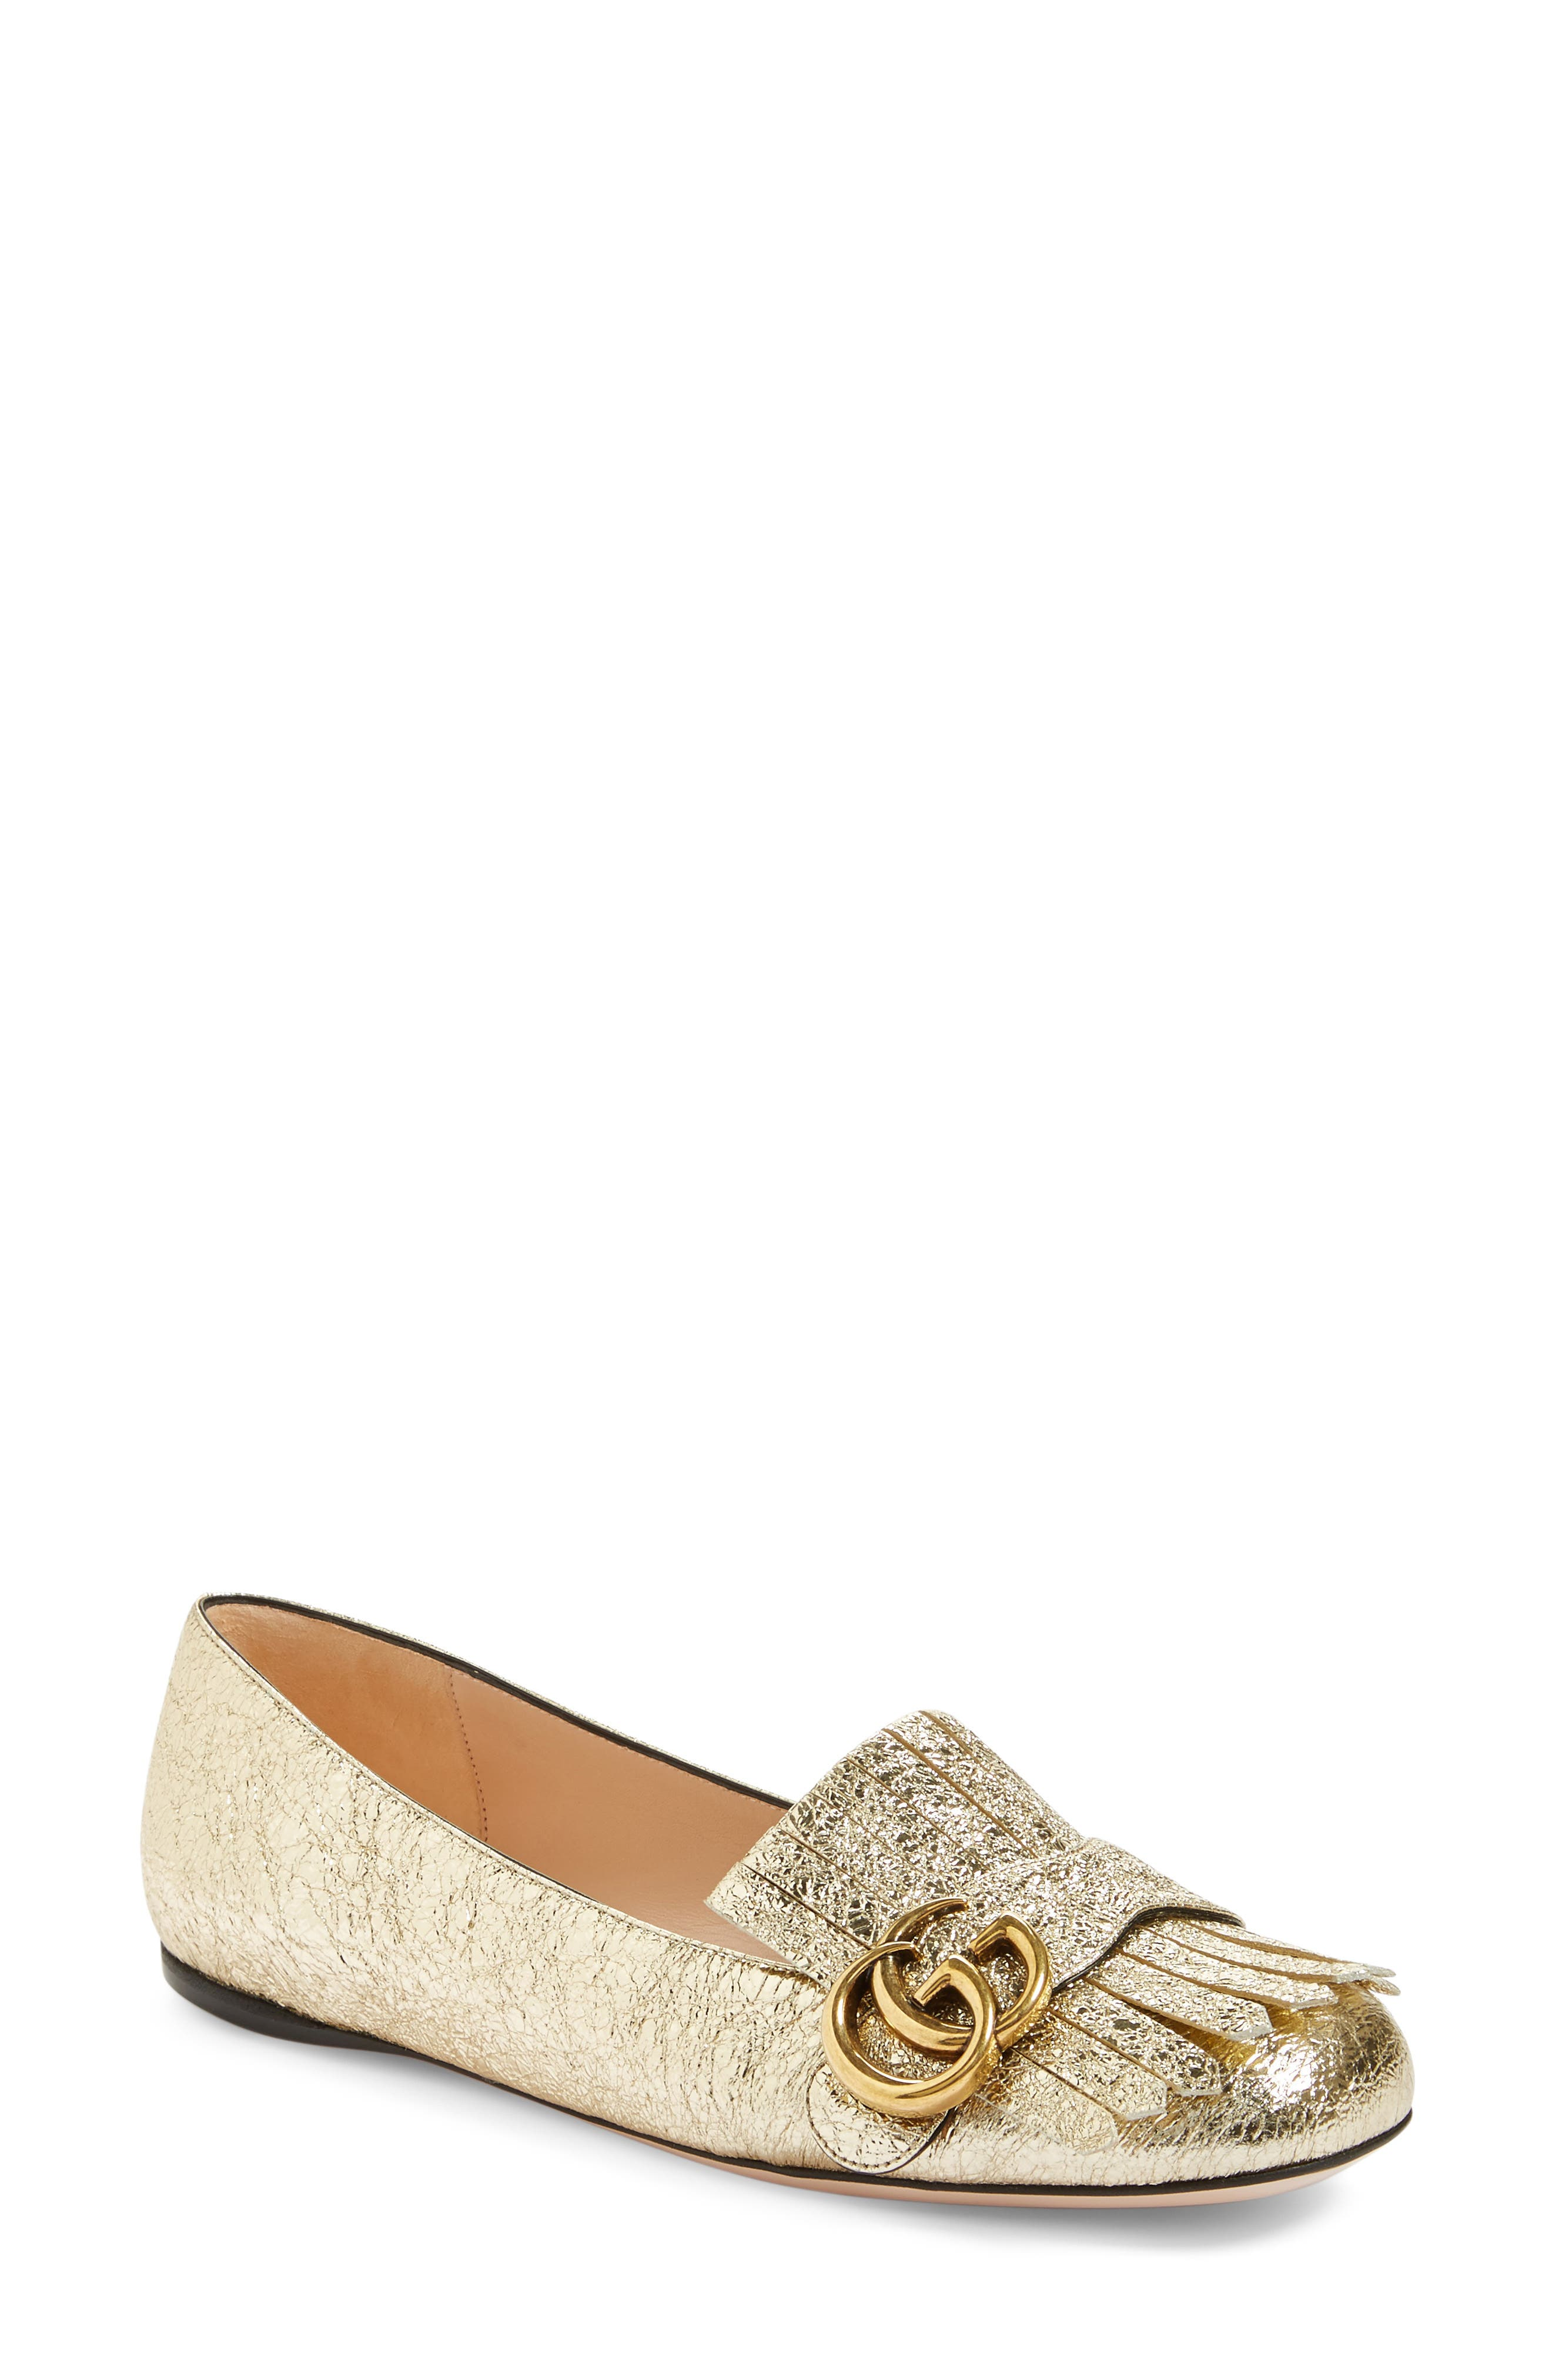 GG Marmont Flat,                             Main thumbnail 1, color,                             GOLD LEATHER